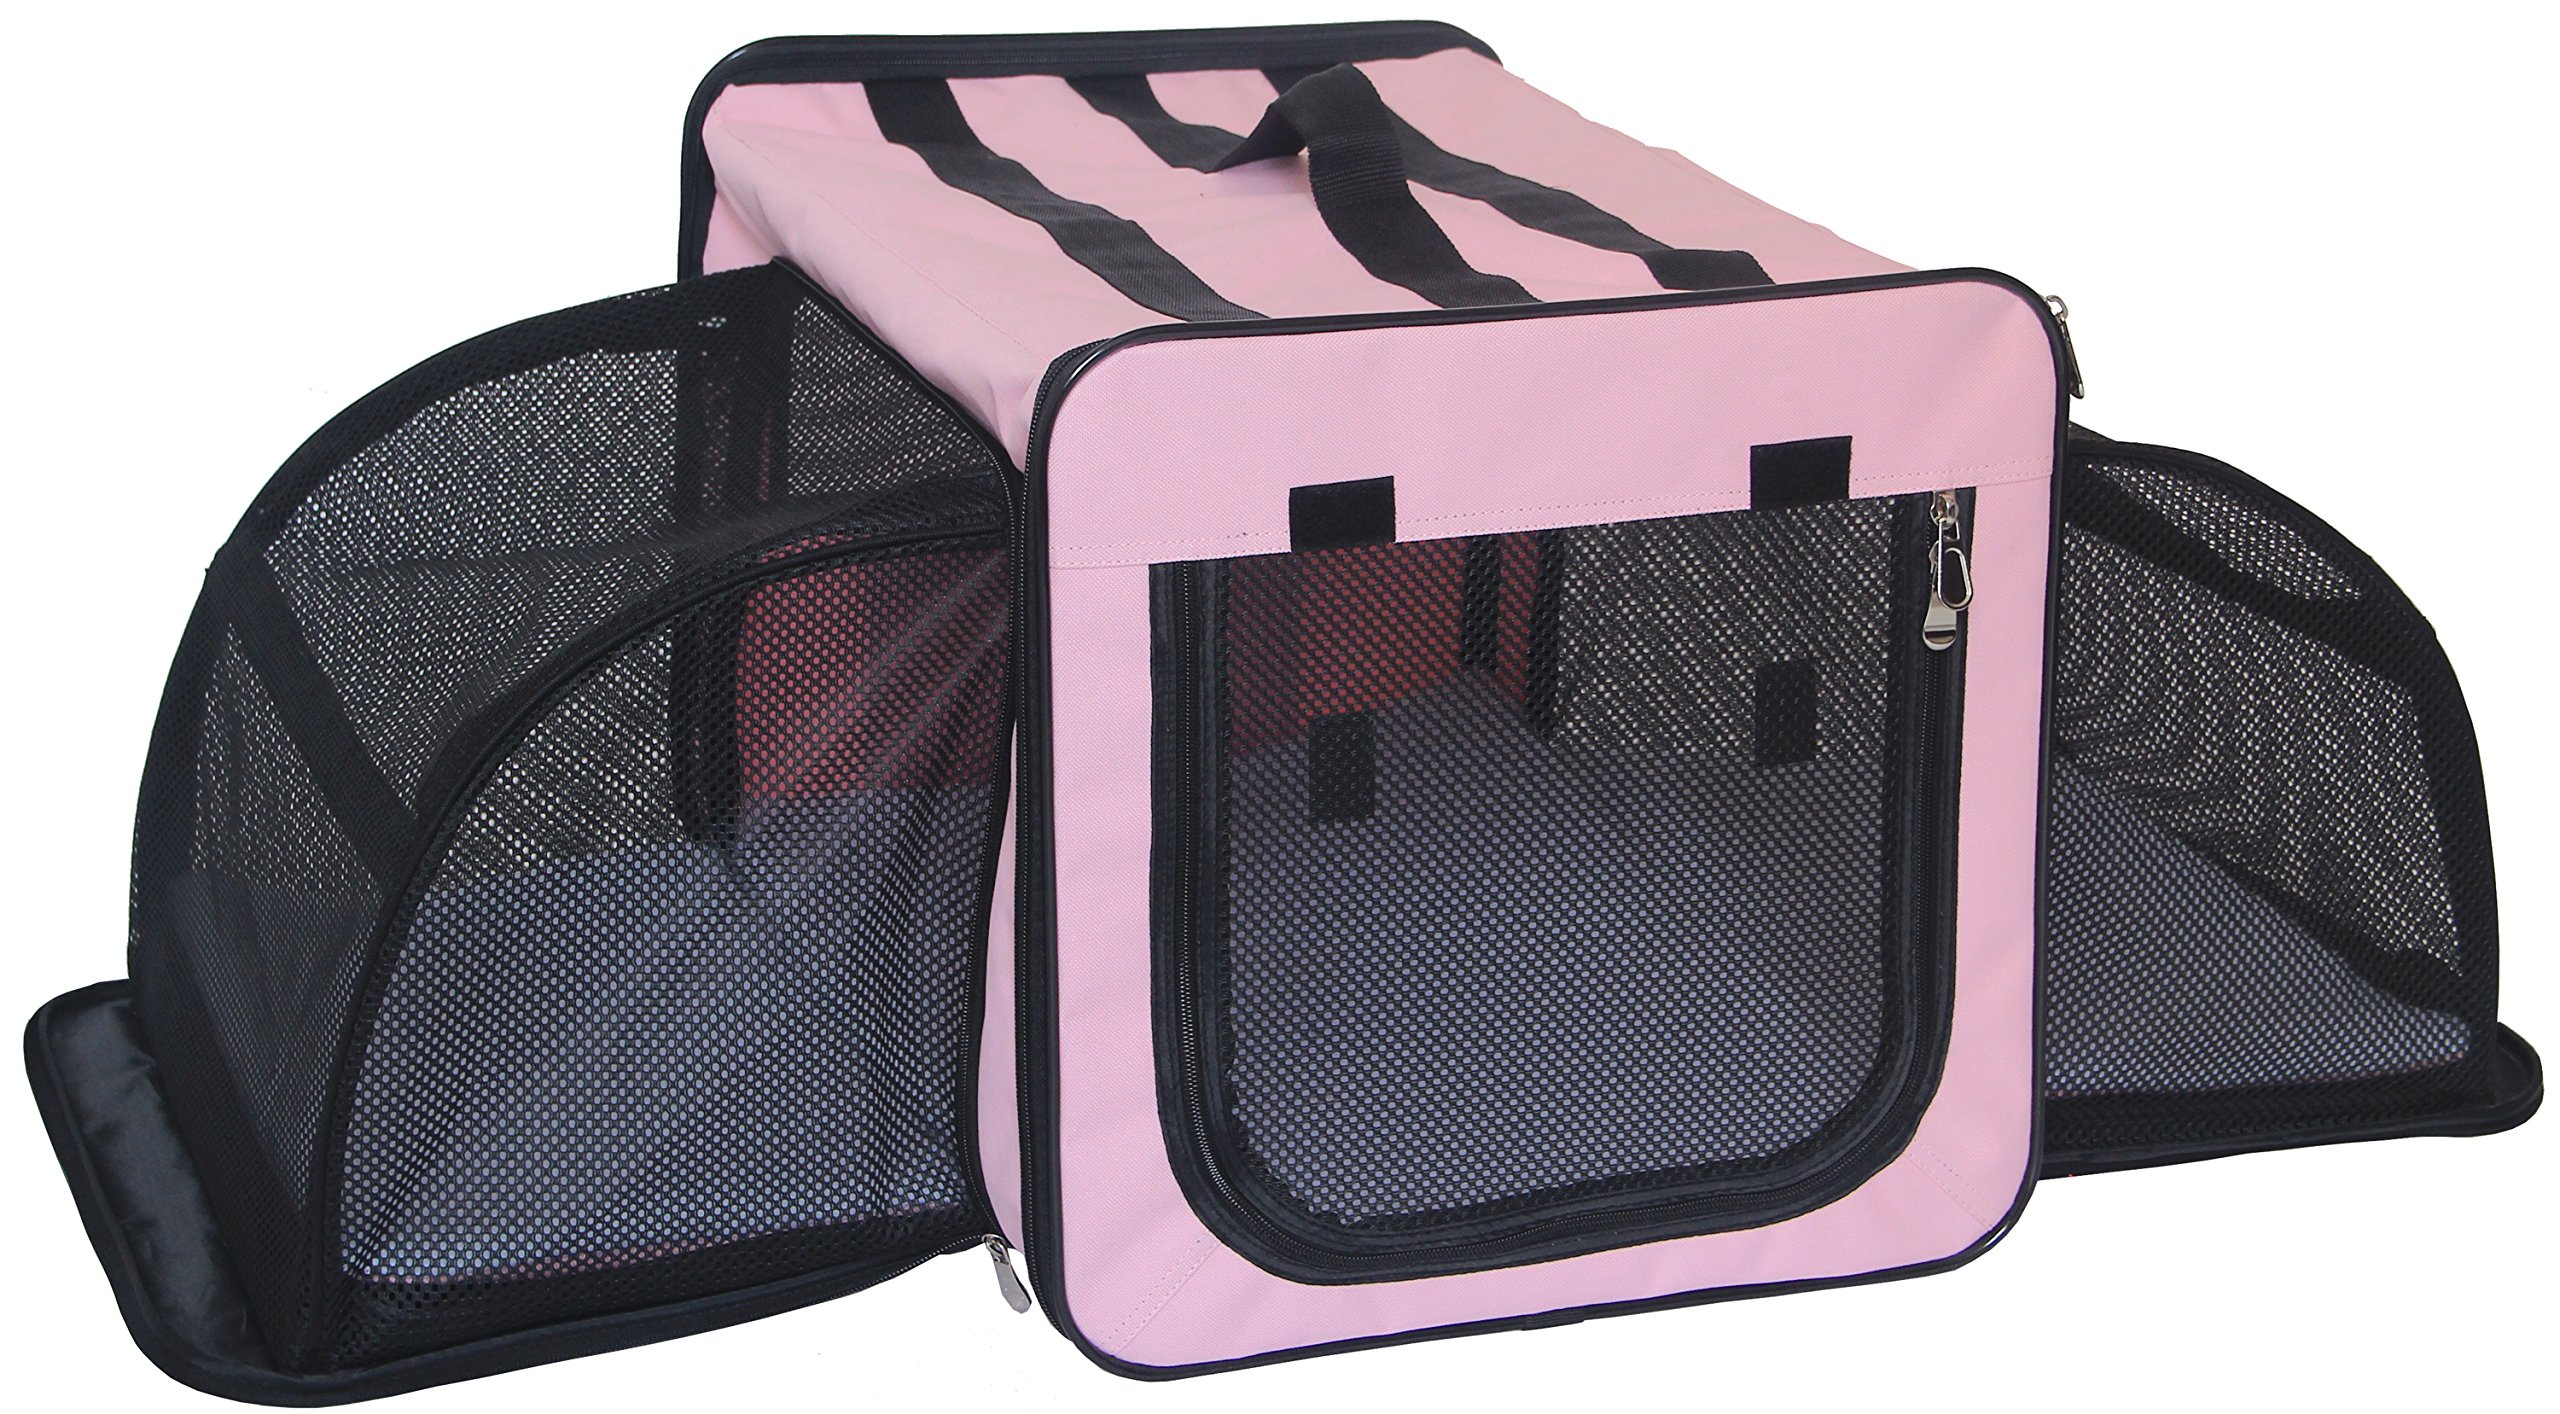 Pet Life Capacious' Dual-Sided Expandable Spacious Wire Folding Collapsible Lightweight Pet Dog Crate Carrier House, Large, Pink by Pet Life (Image #2)